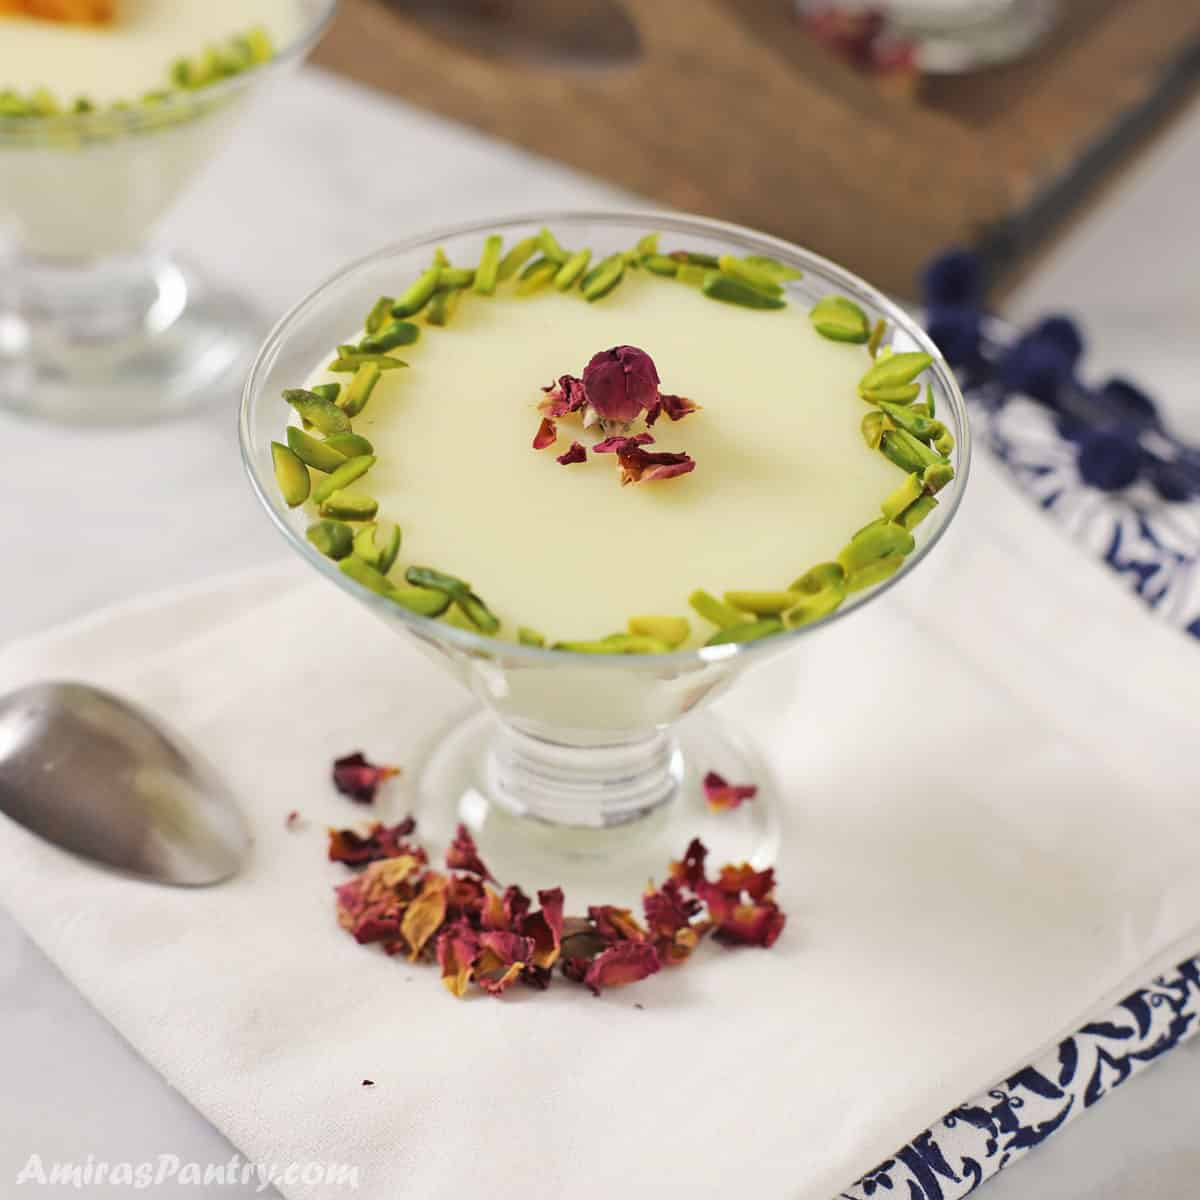 A dessert bowl of mahalabia garnished with pistachios and edible roses placed on a white towel.